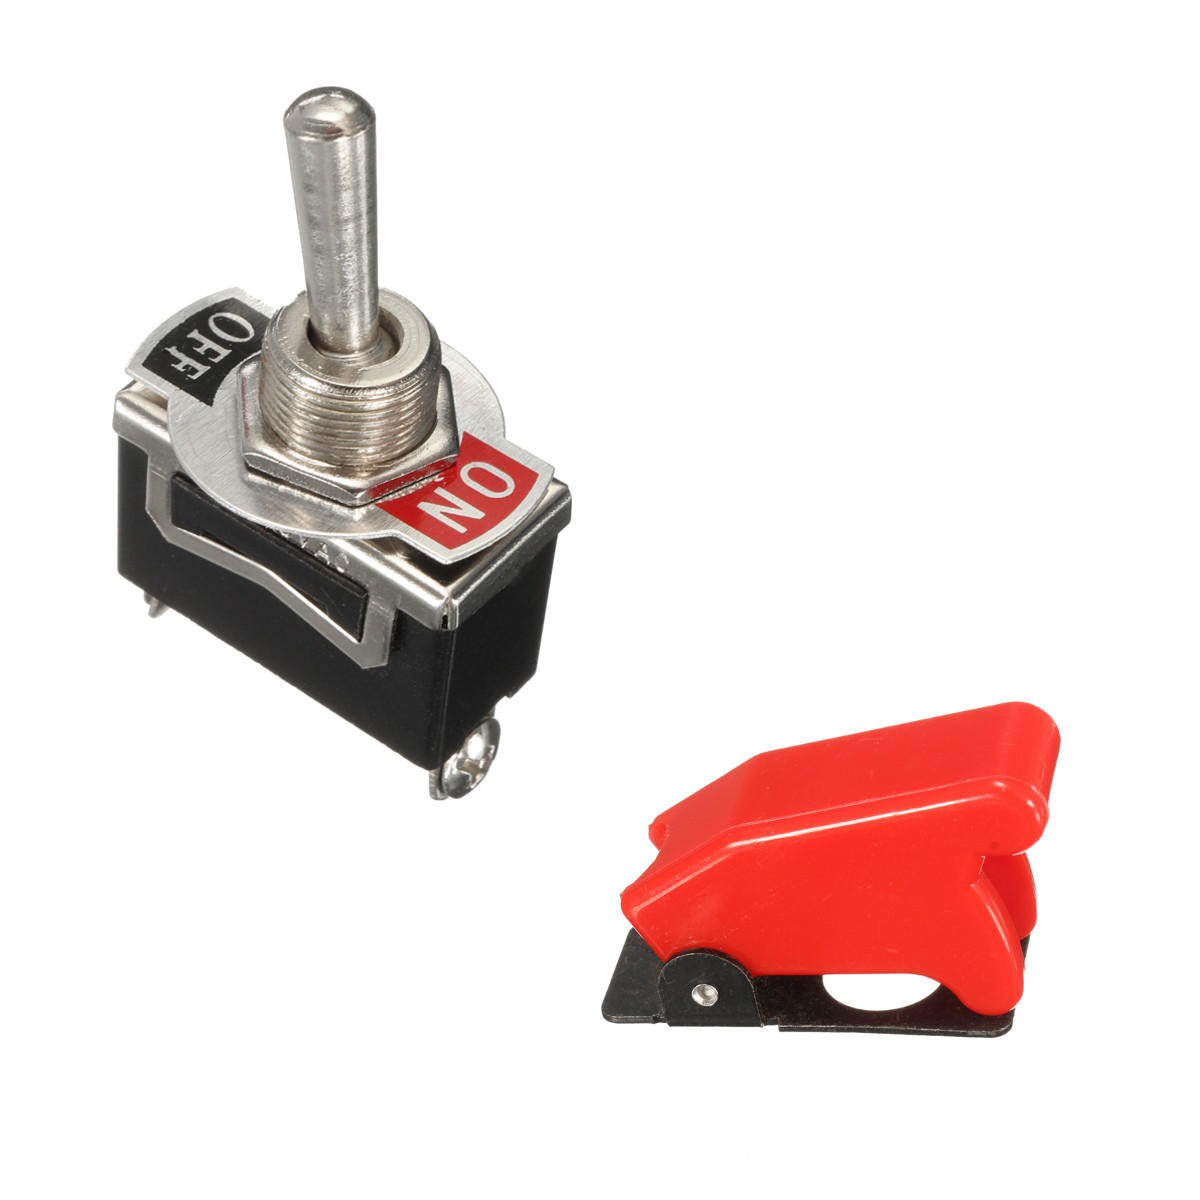 12V Heavy Duty Toggle Switch Flick ON/OFF